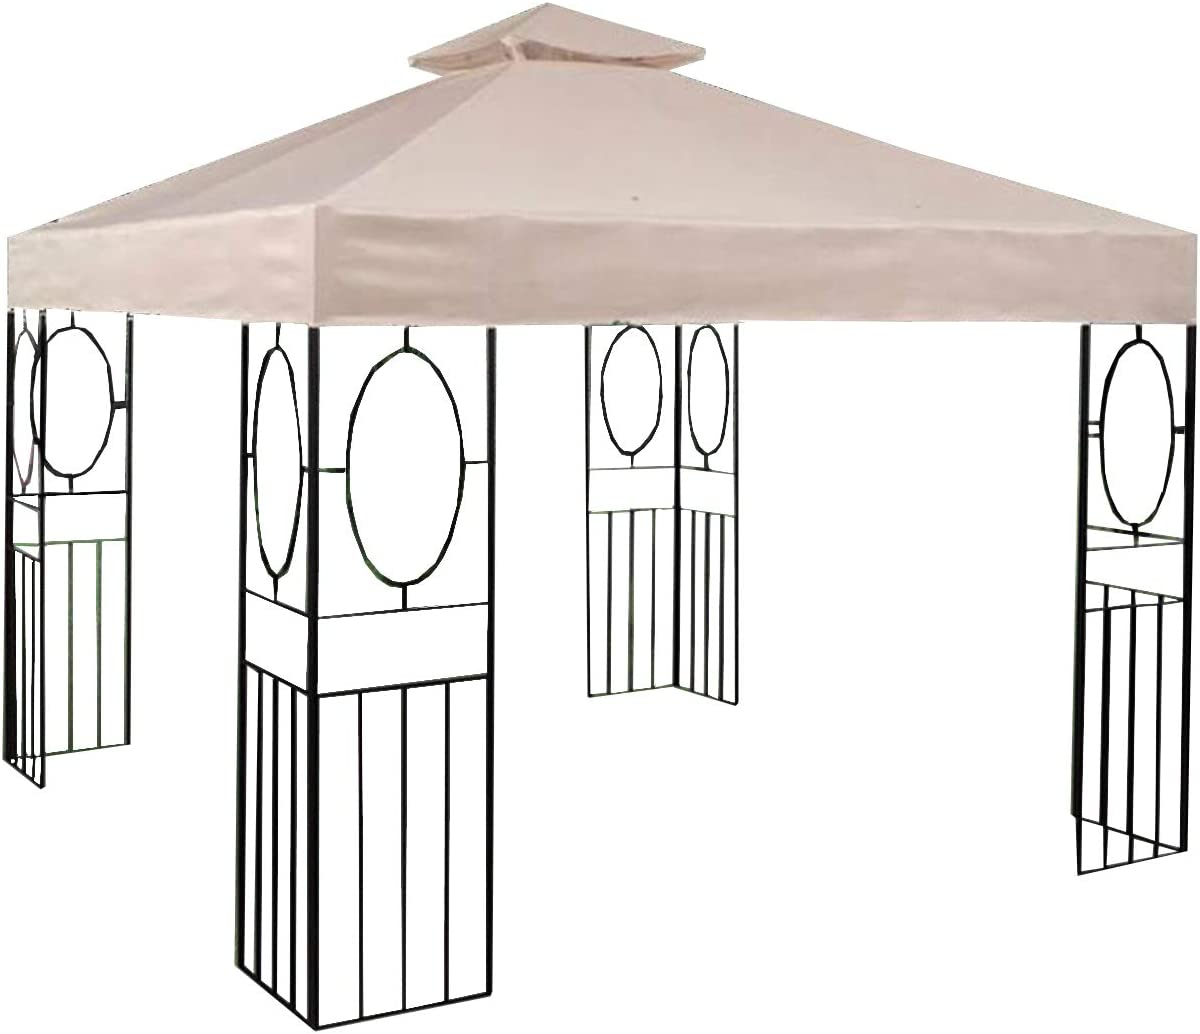 Garden Winds Replacement Canopy Top Cover for The 10' x 10' Masley Gazebo - 350